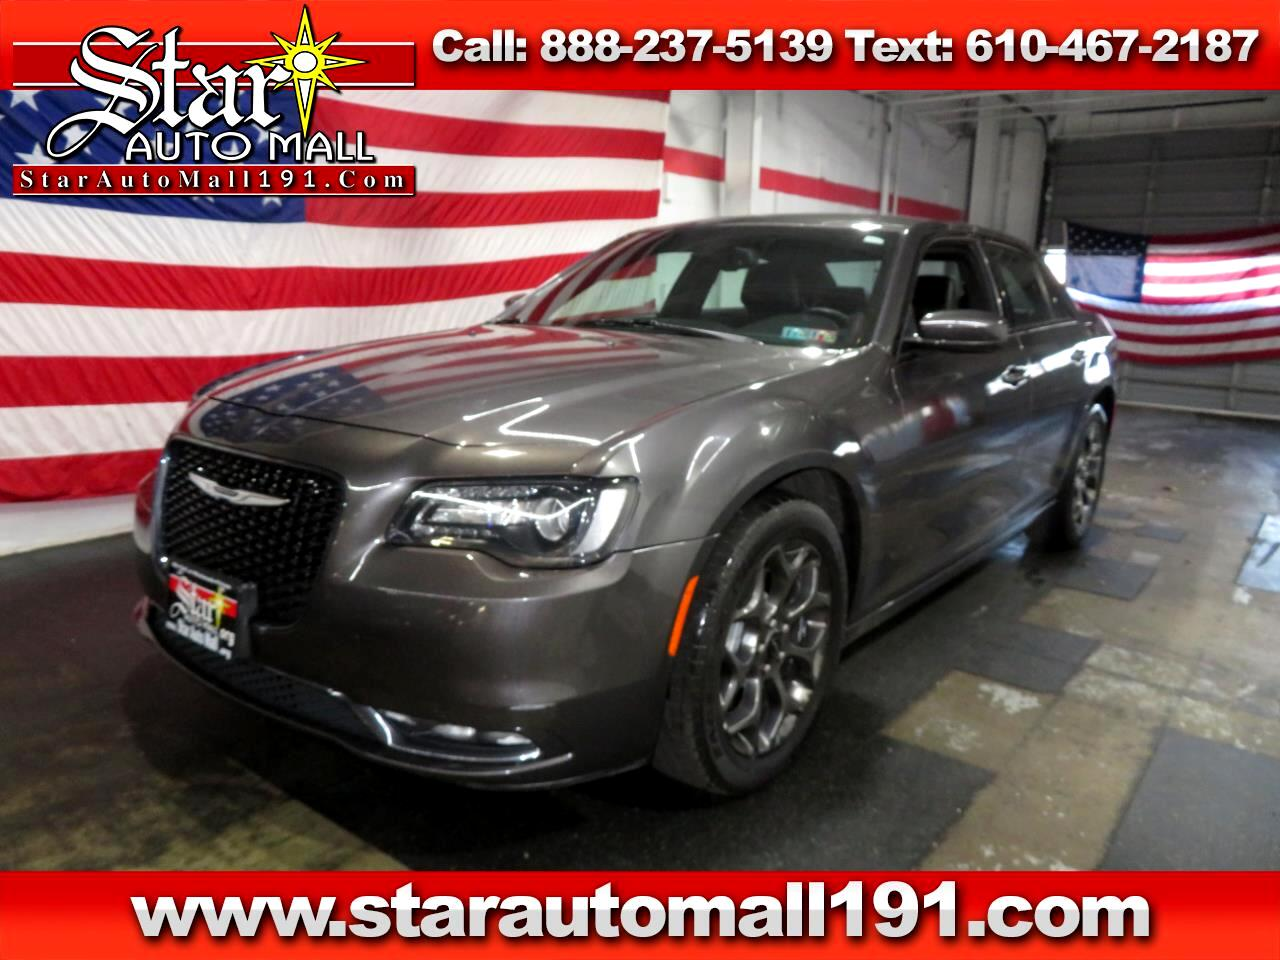 2016 Chrysler 300 S V6